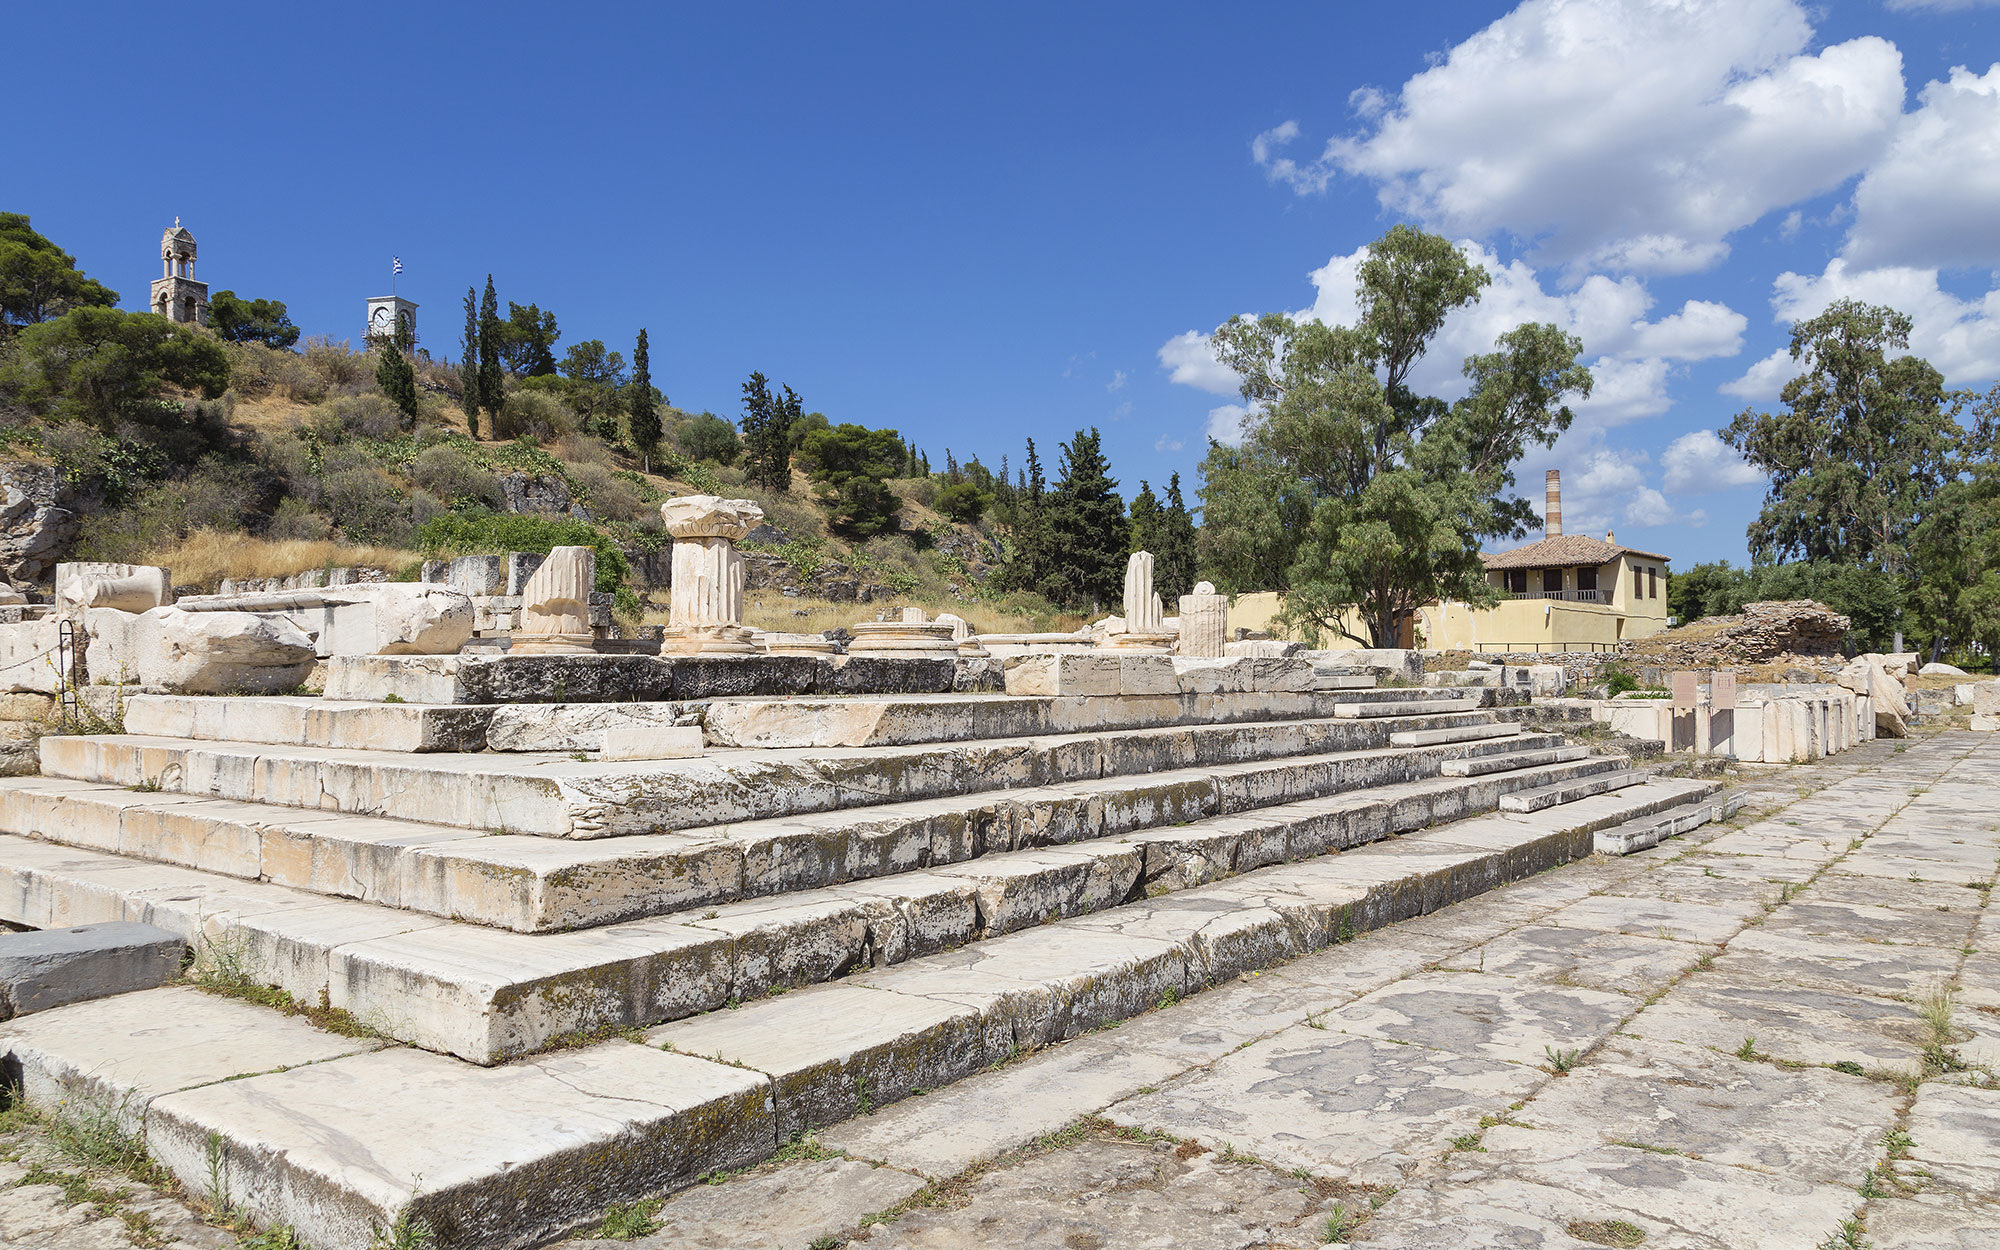 Best Ancient Greek Sites to Visit: Sanctuary of Demeter and Kore at Eleusis